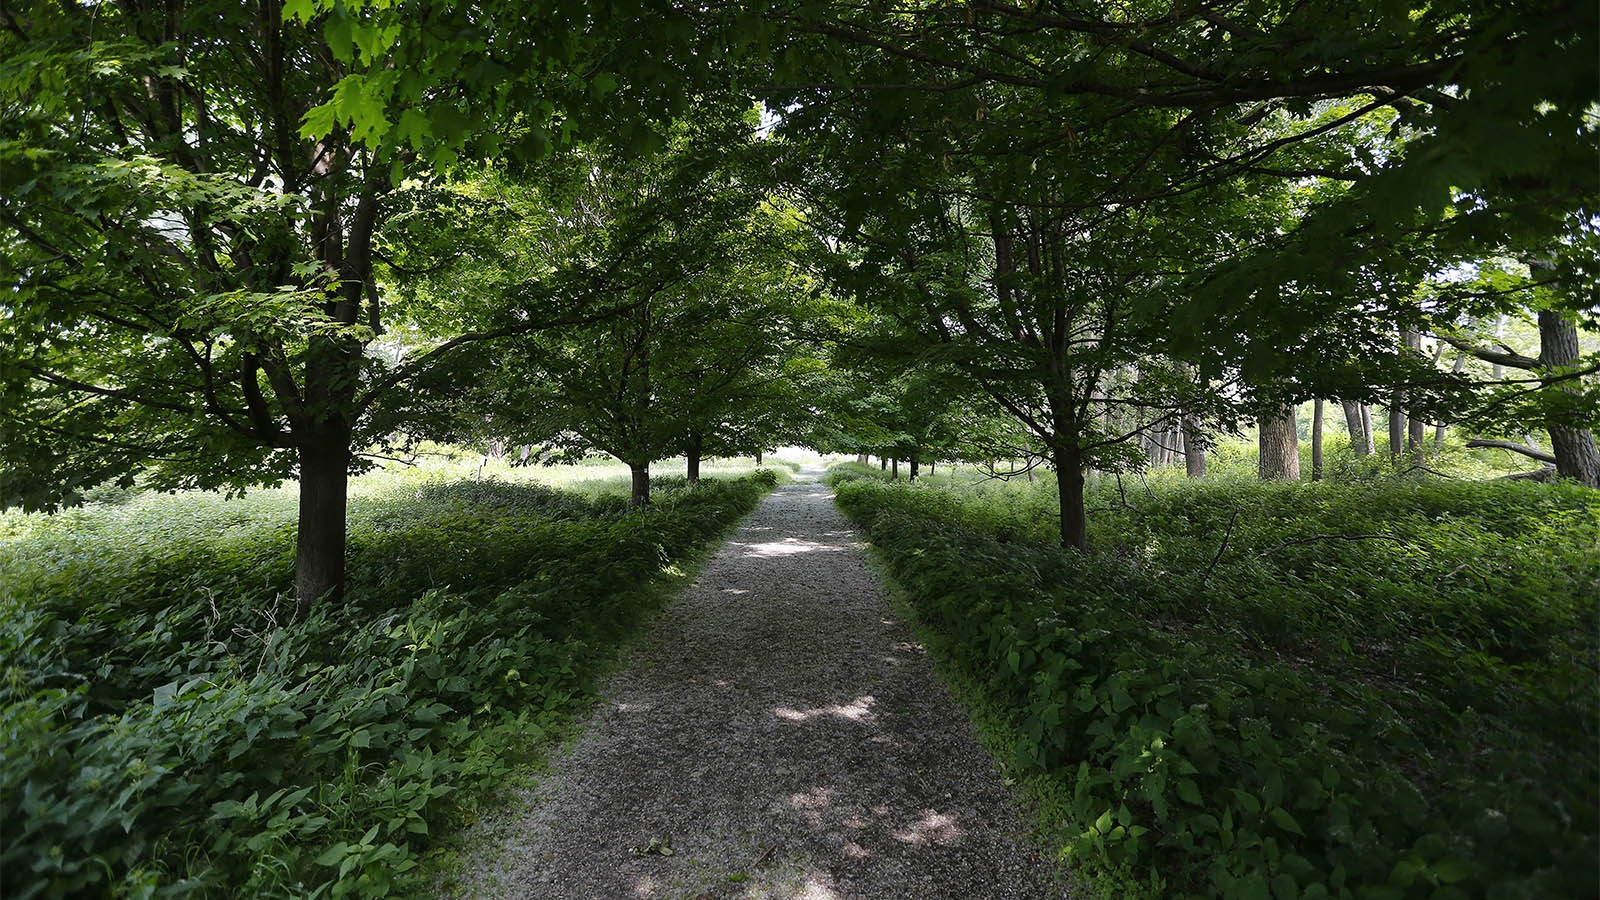 Day 175: June 24, 2018 - A path through the trees at the Tifft Nature Preserve in Buffalo.